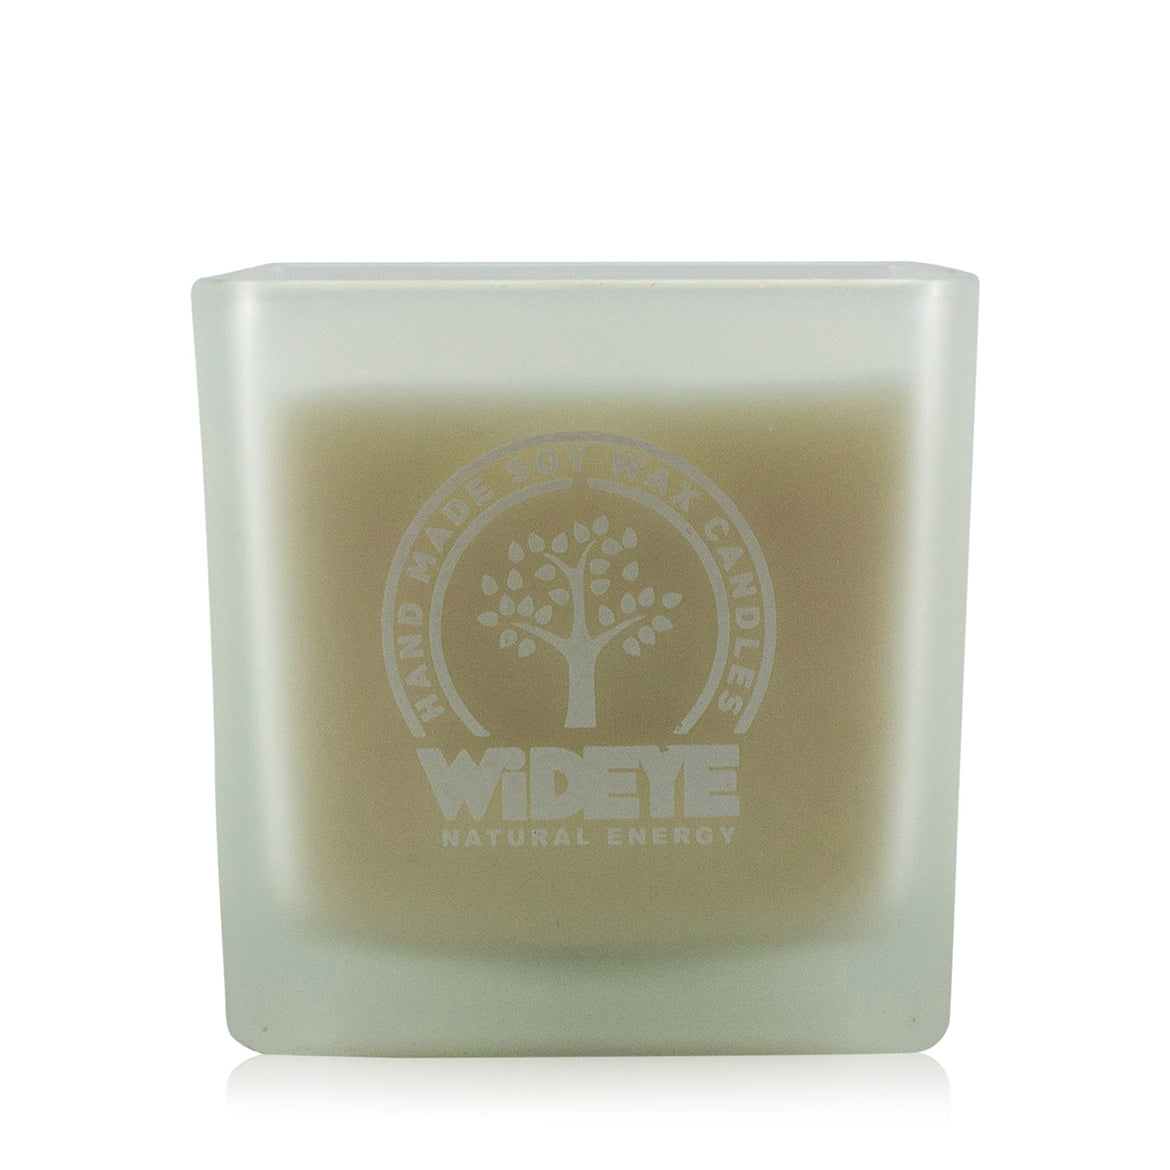 Natural aromatherapy vegan soy wax Jasmine and Geranium frosted candle jar handmade by WiDEYE in Rye.